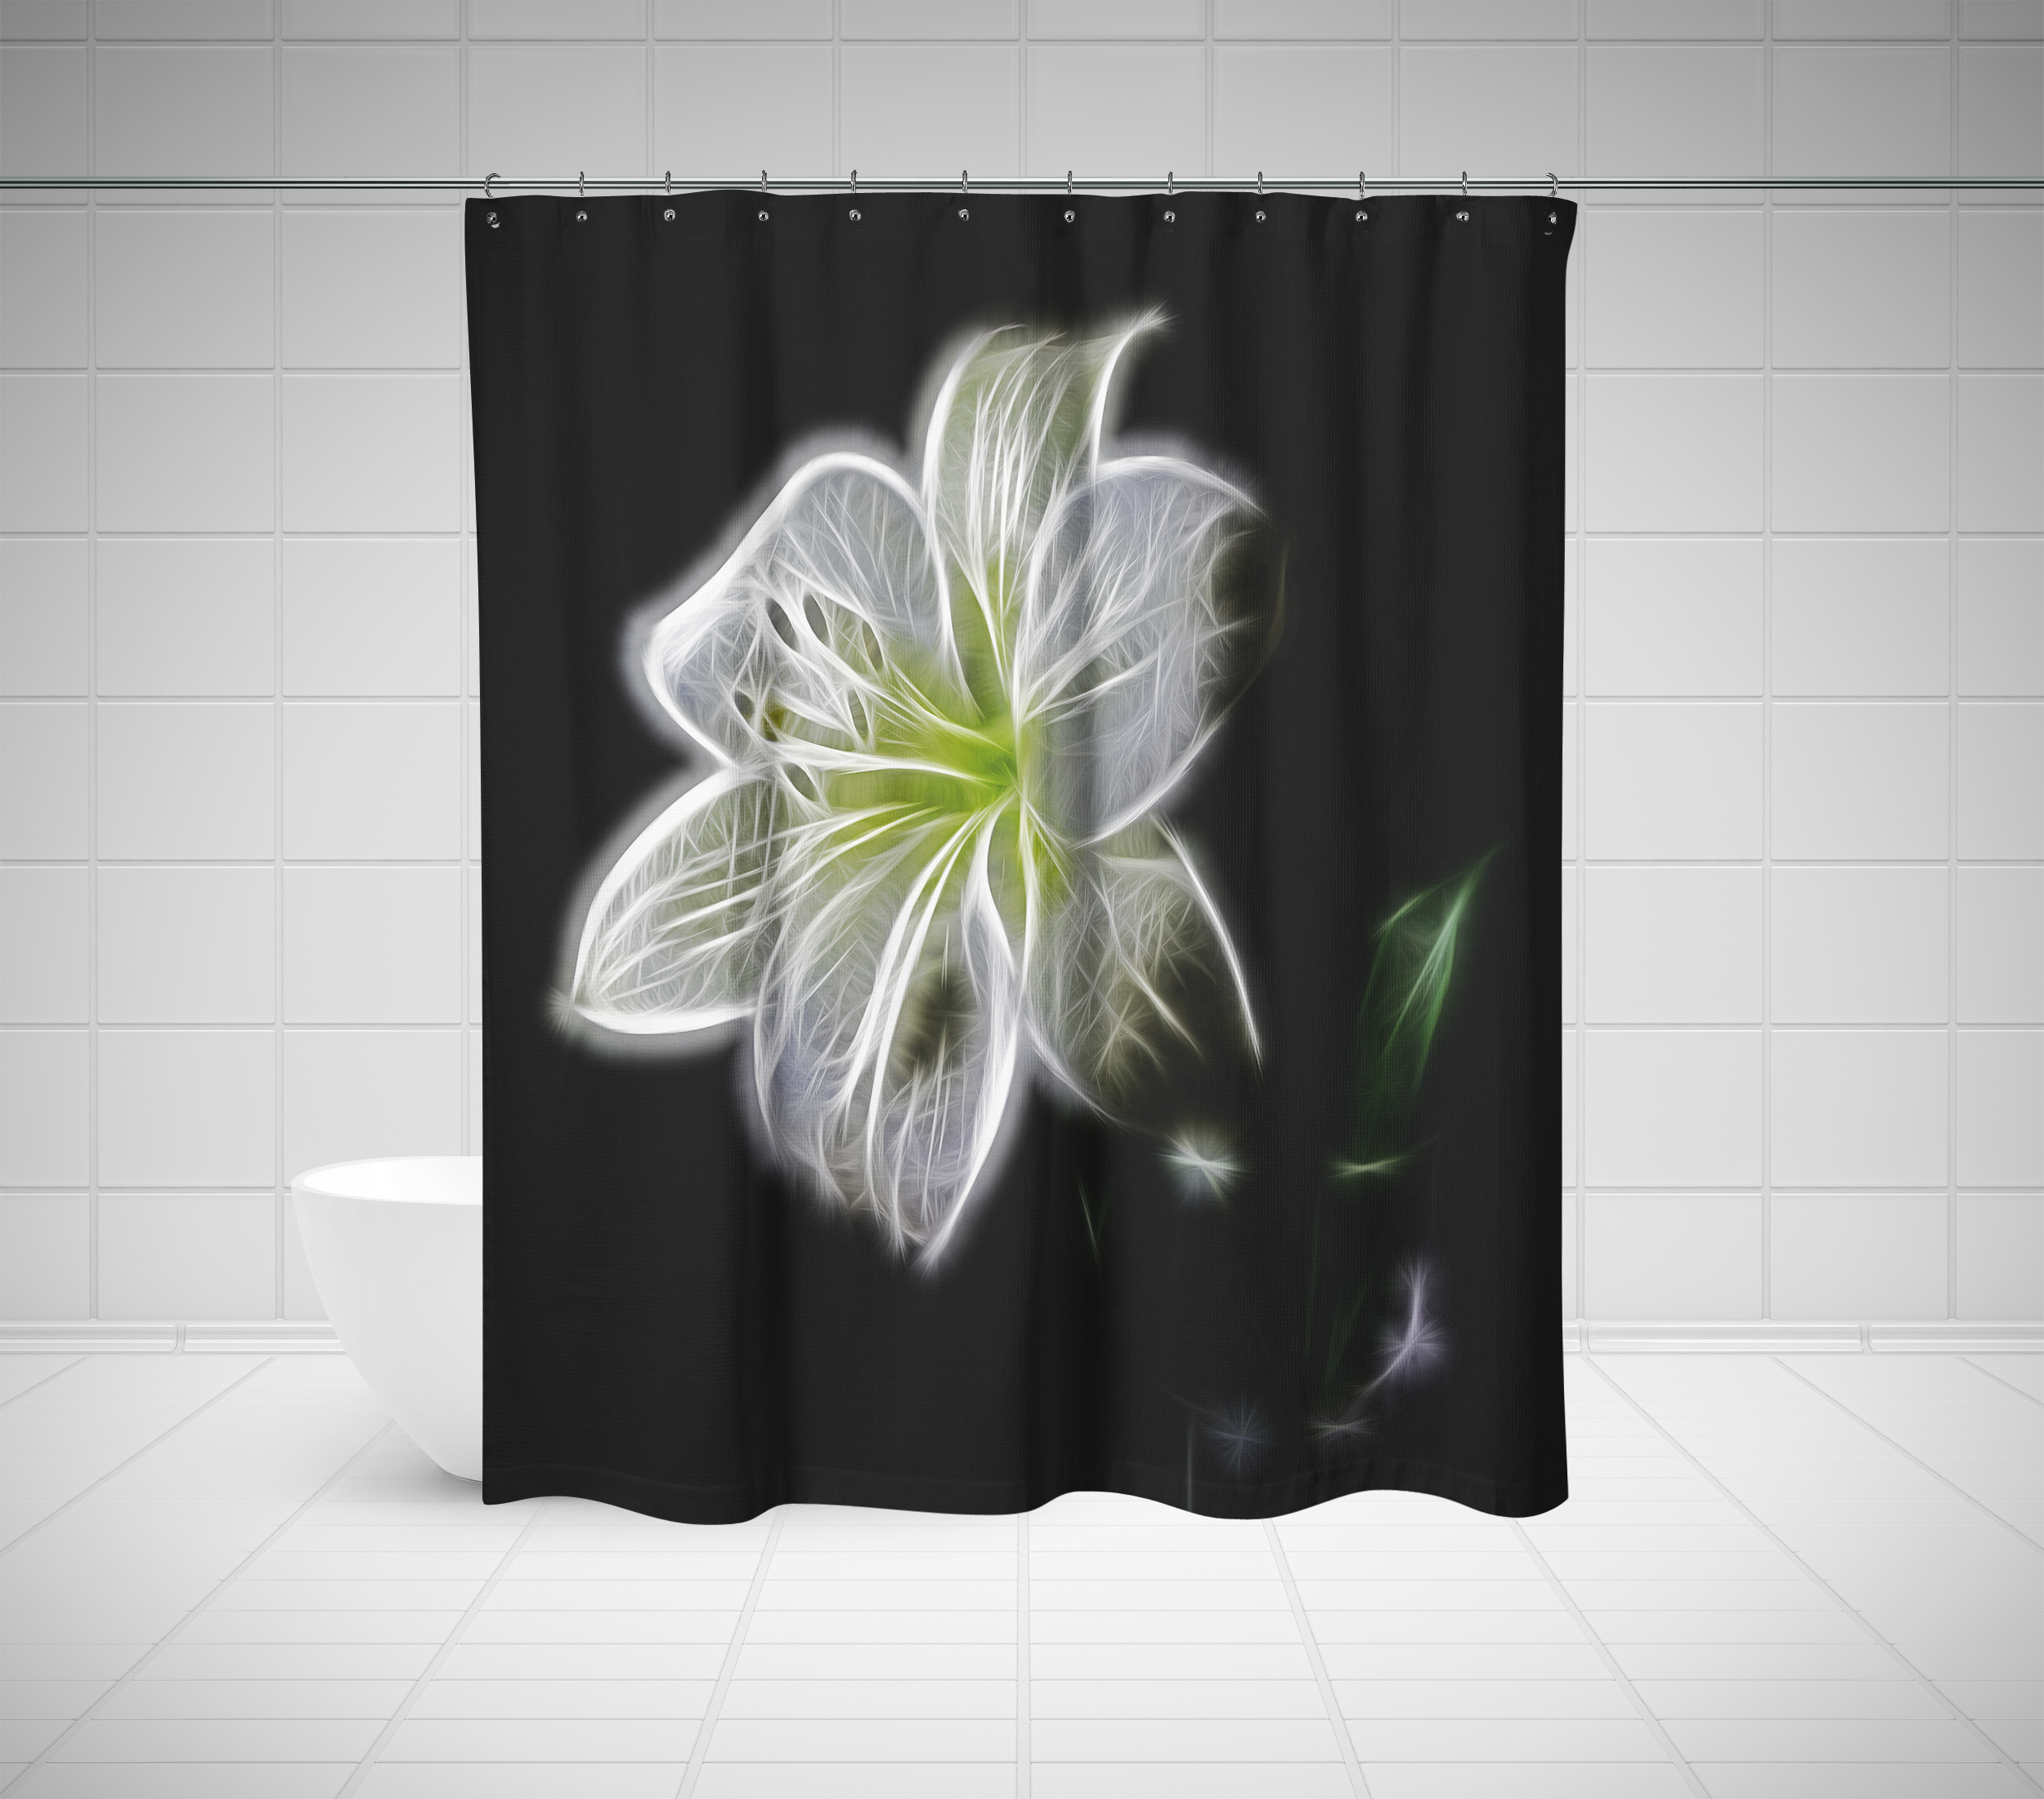 World Market Bird Shower Curtain | Floral Shower Curtain | Bright Floral Shower Curtain